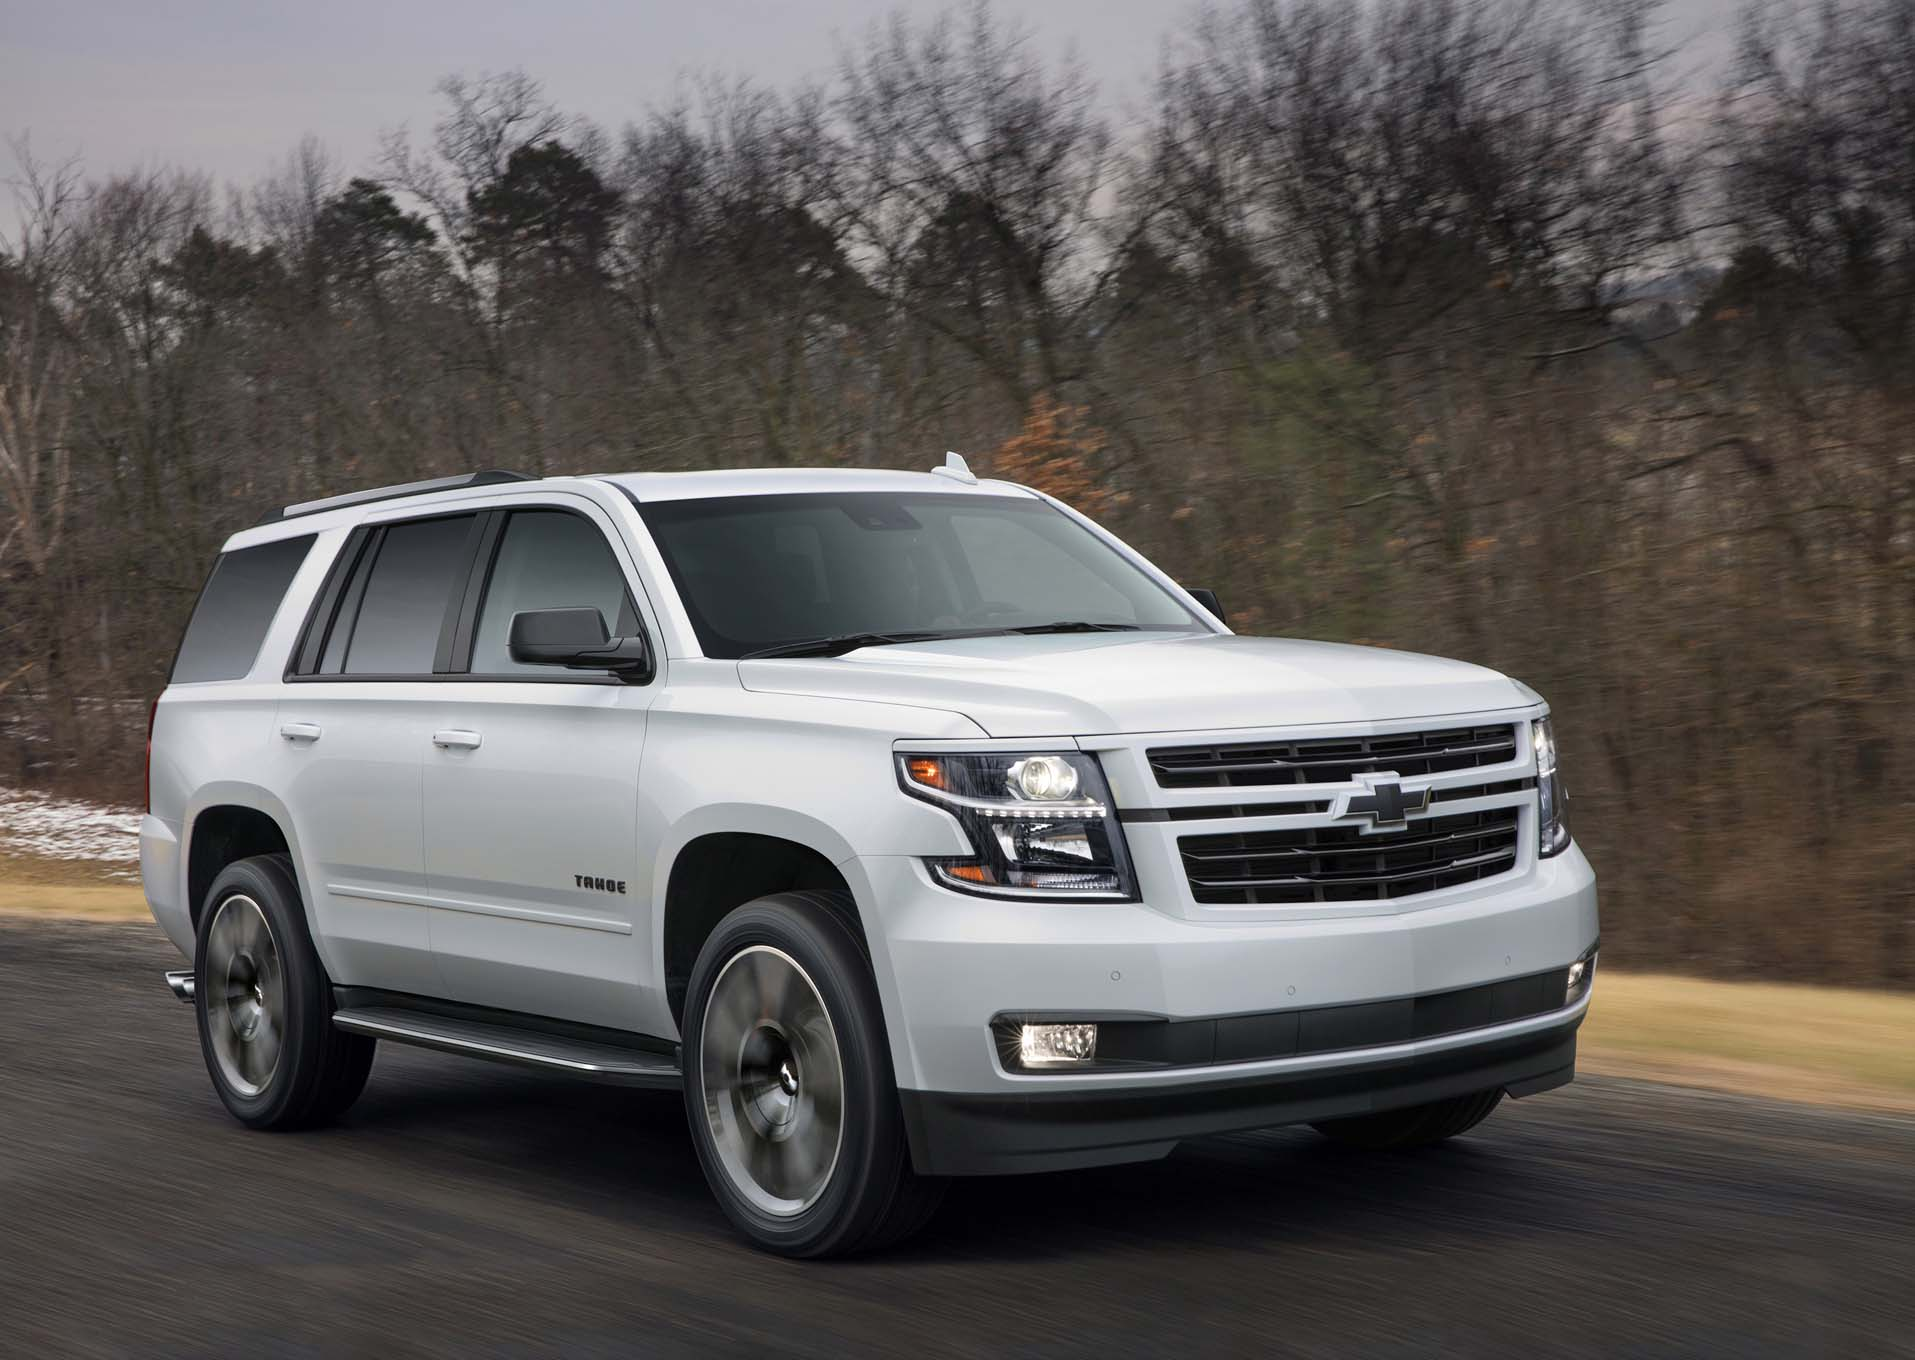 2018 chevrolet tahoe rst is ready to pound pavement automobile magazine. Black Bedroom Furniture Sets. Home Design Ideas